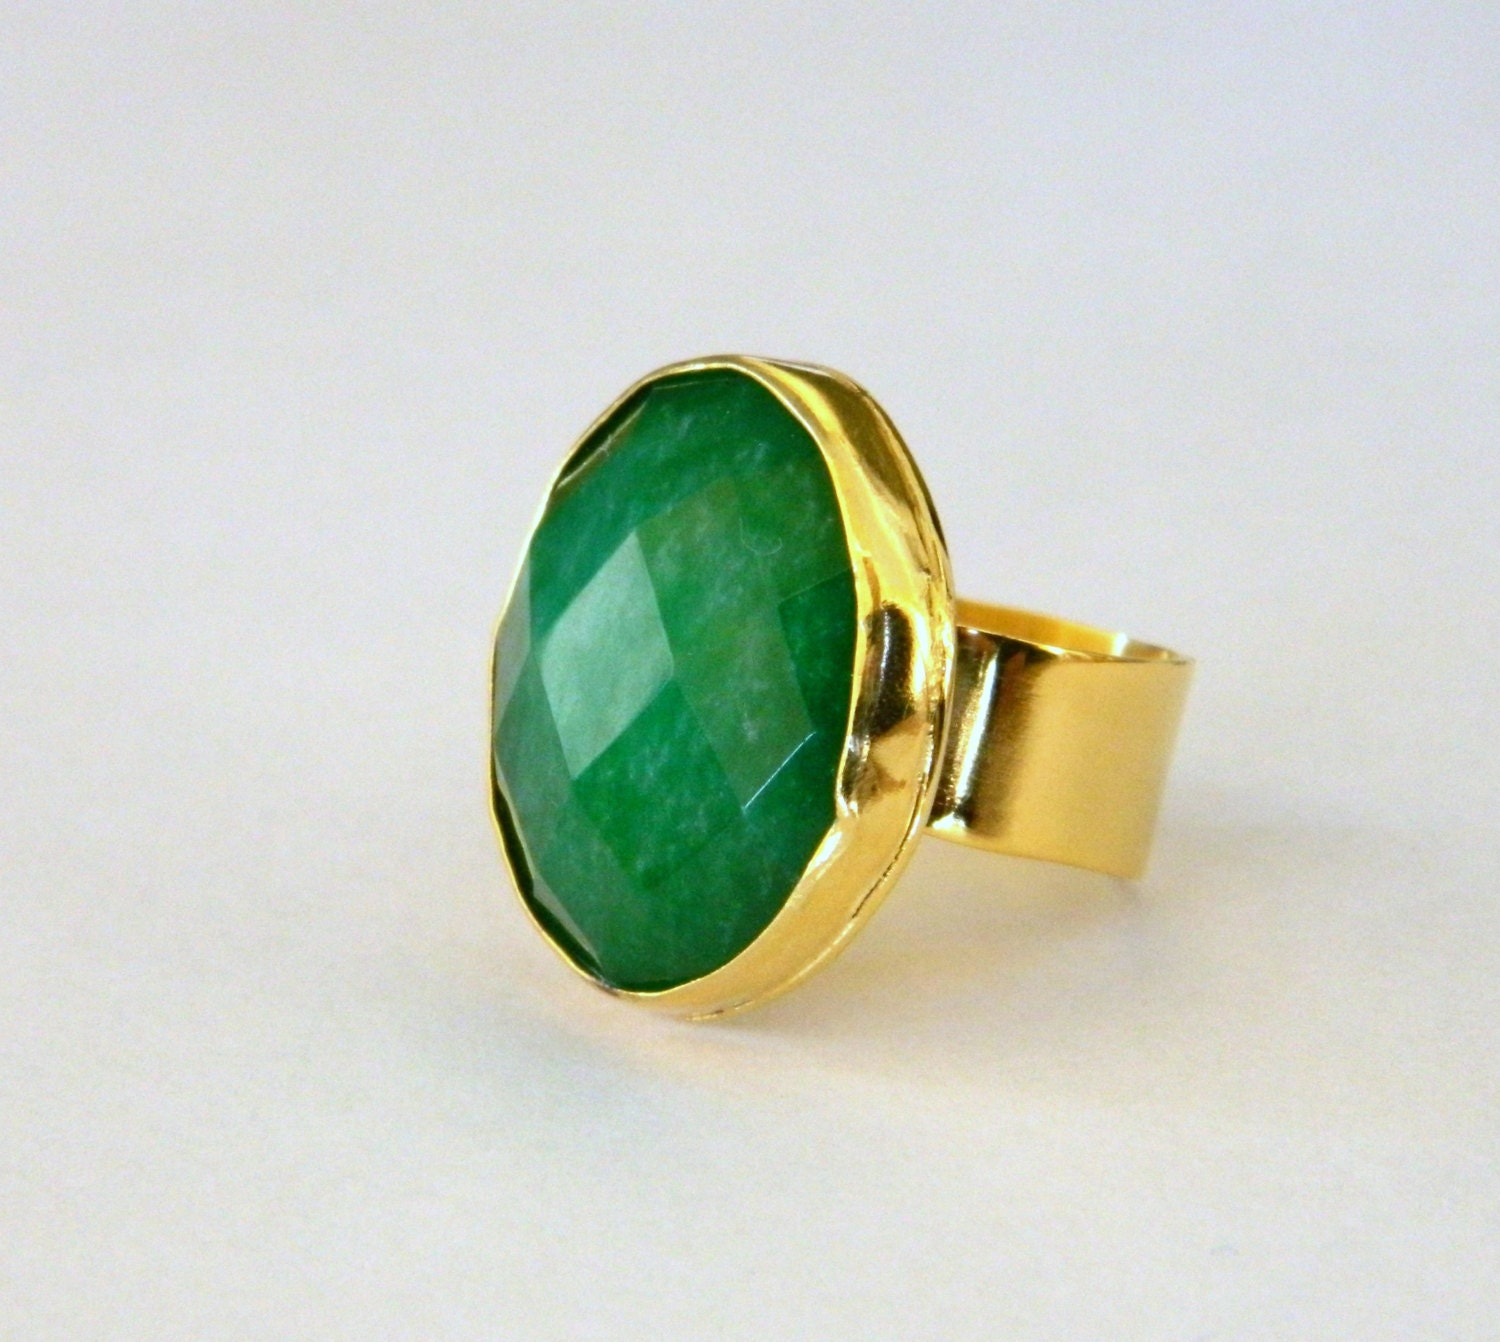 jewelry ring with cabochon m rings fmt hei in constrain wide mm peretti jade ed green fit elsa gold id wid